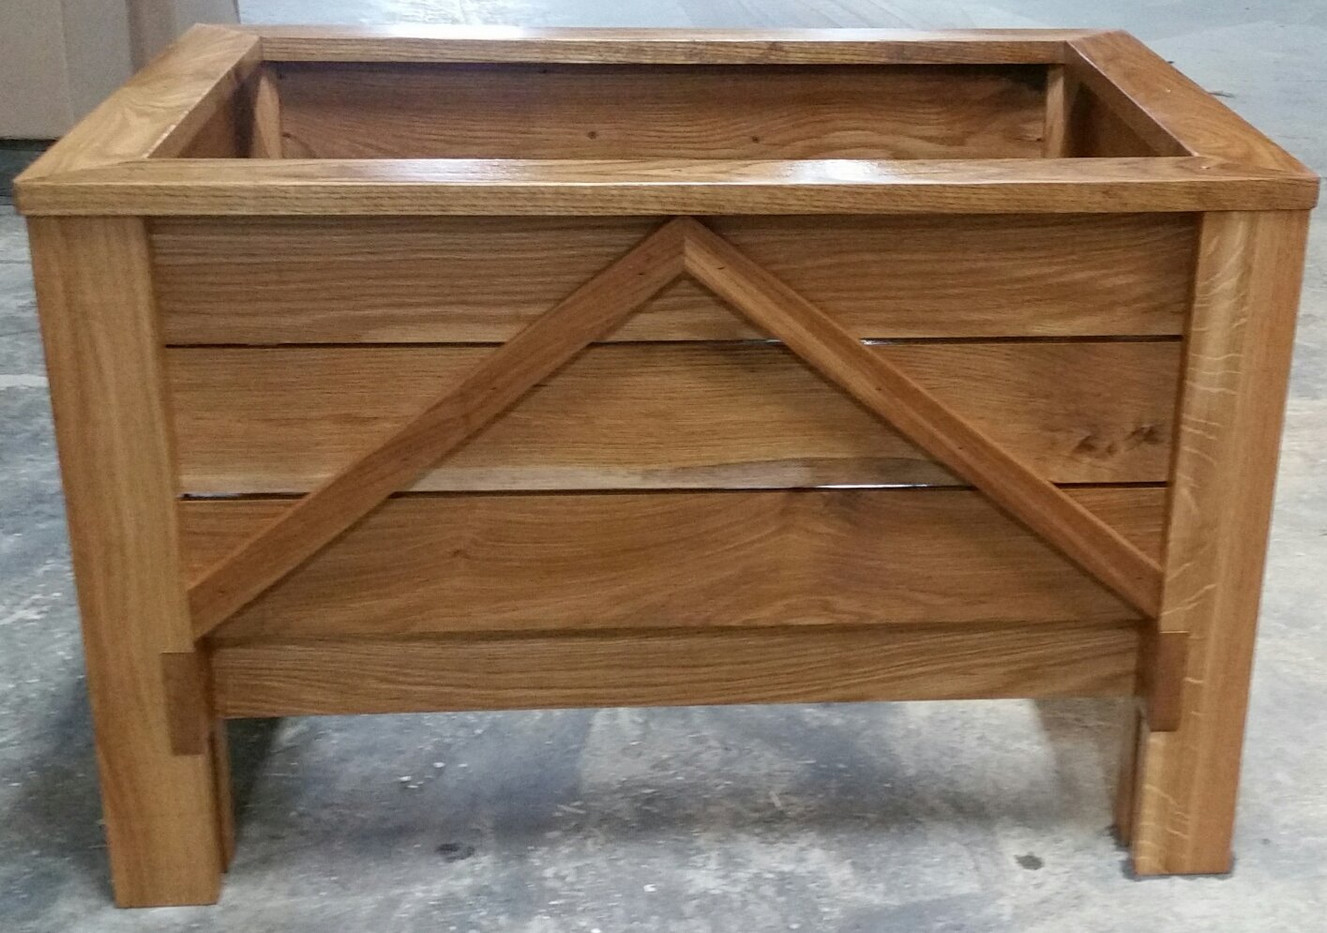 Solid wood planter